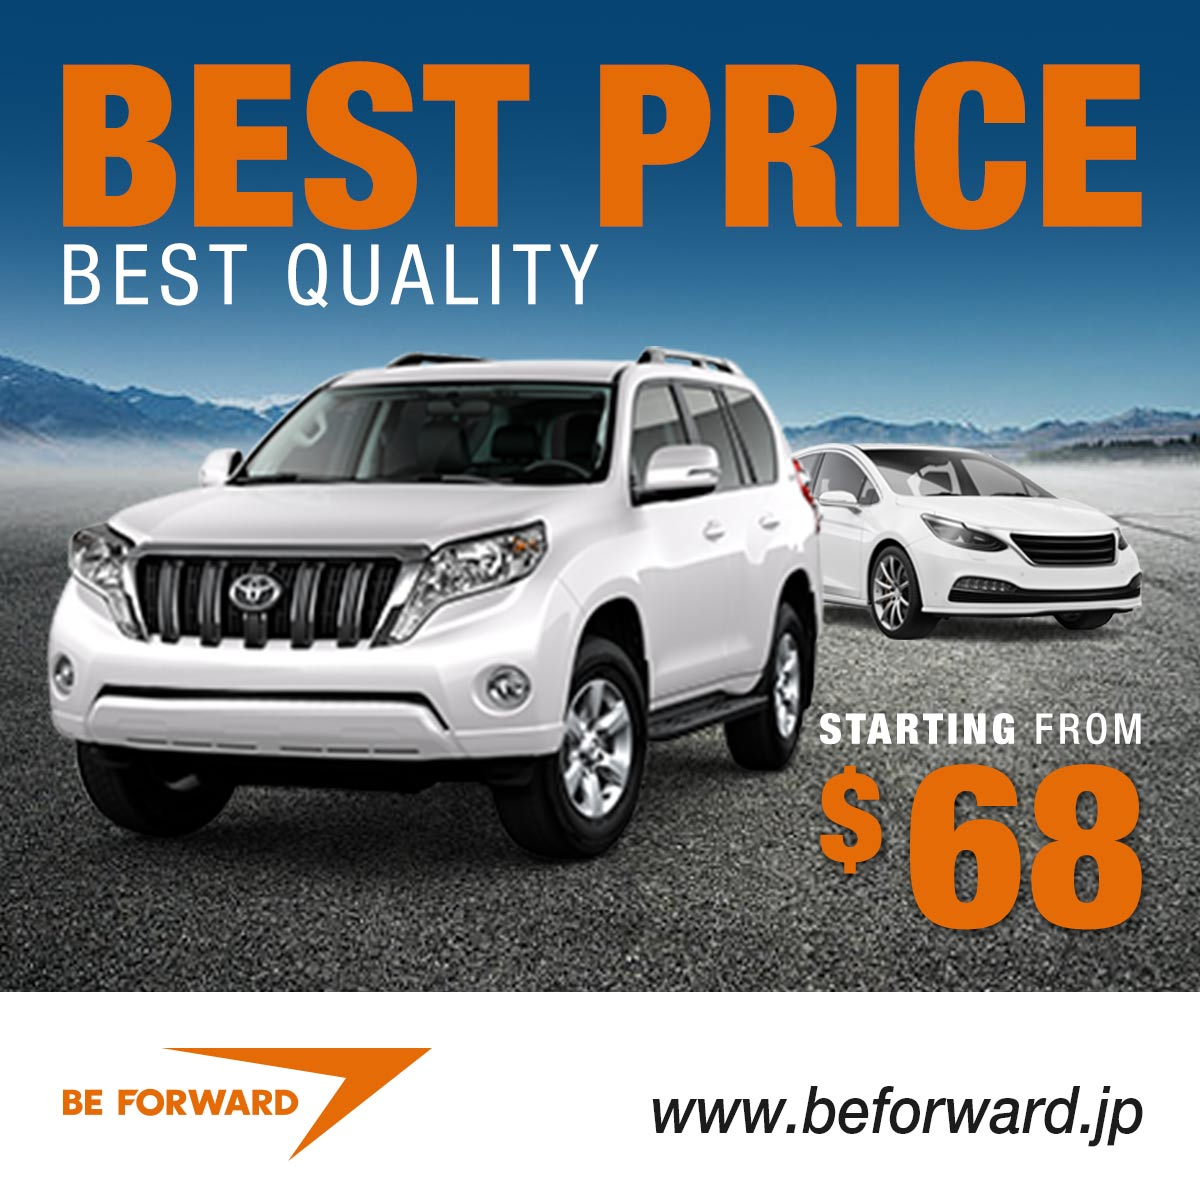 Best Price, Best Quality Sale - Find Japanese used cars from $68!